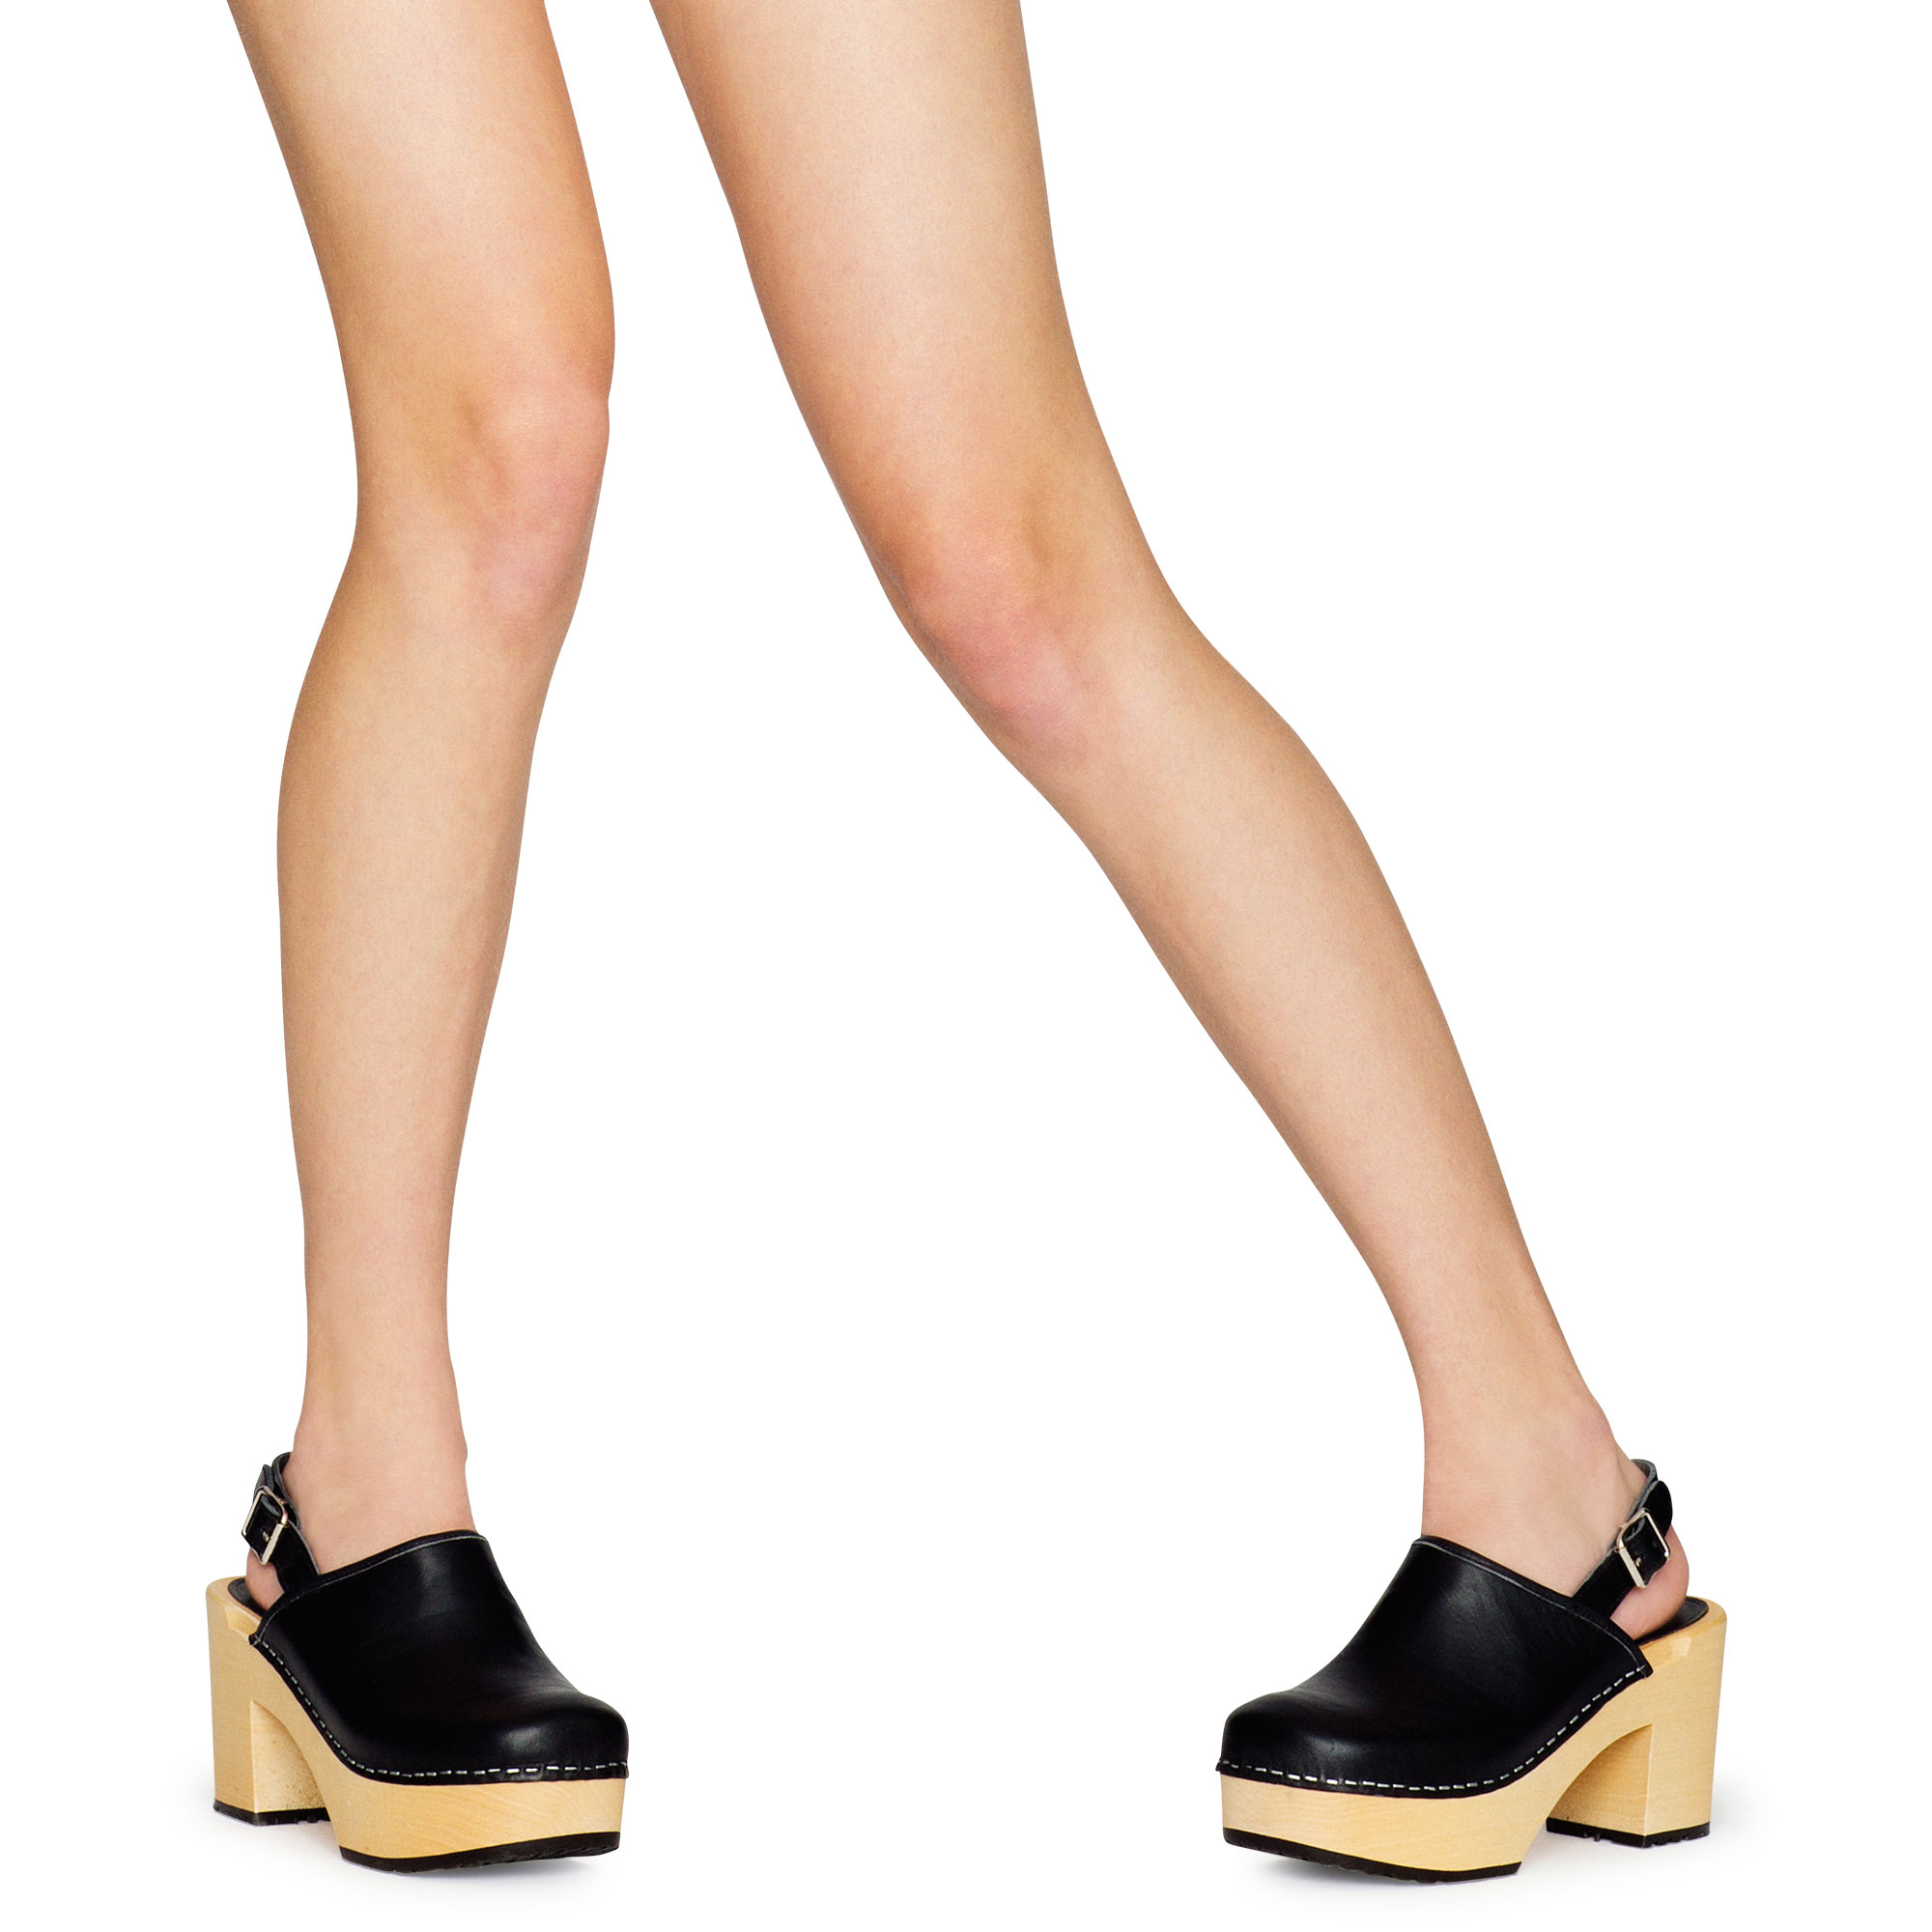 069a74f743a OutOfStock  Outlet Swedish Hasbeens Outlet SS18 Black. Product image Jill  Plateau